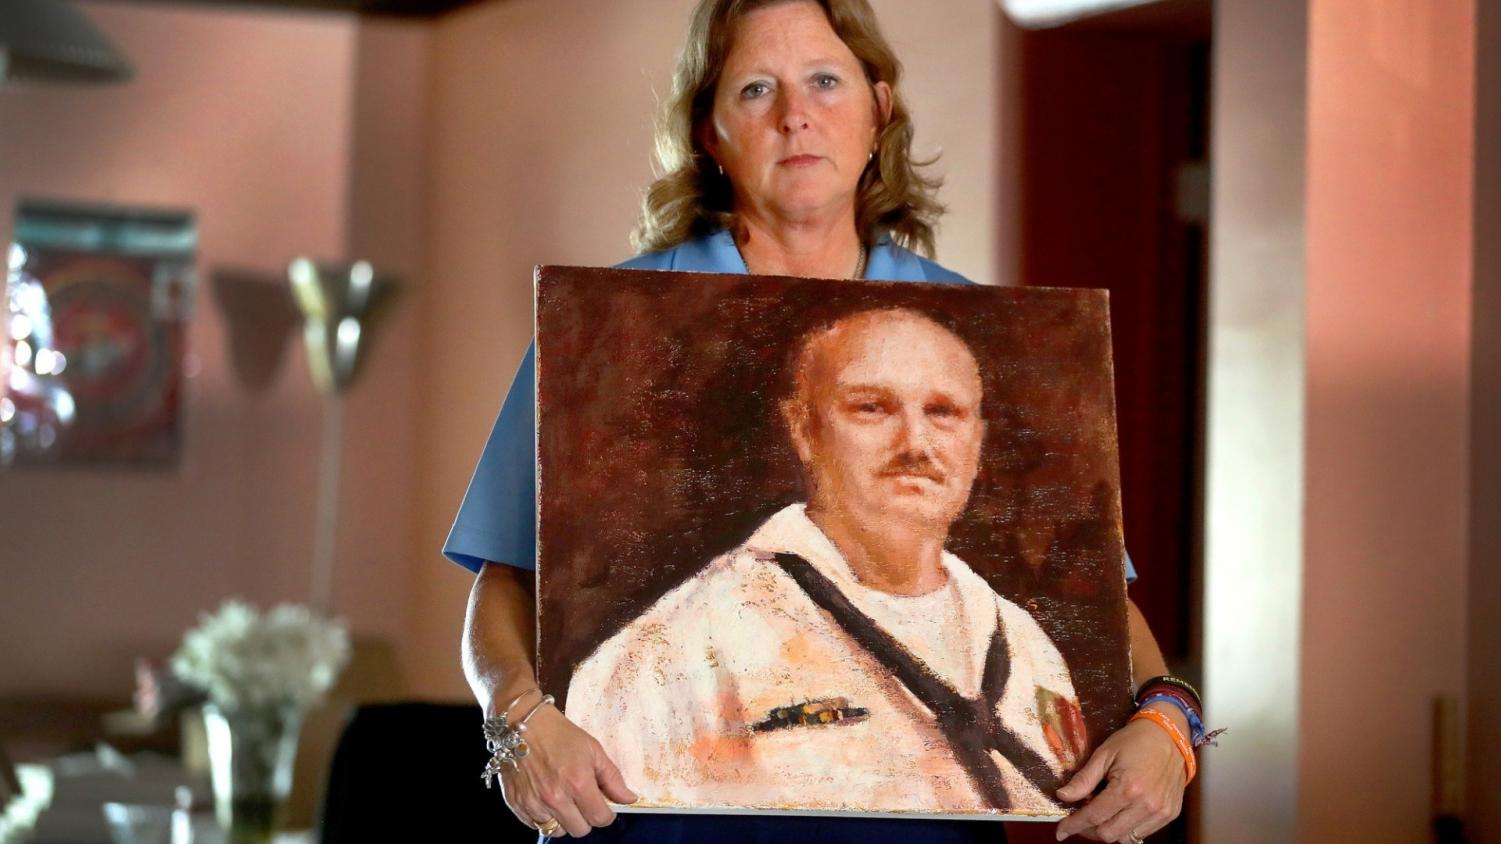 Debra Hixon holding up a painted portrait of her late husband.